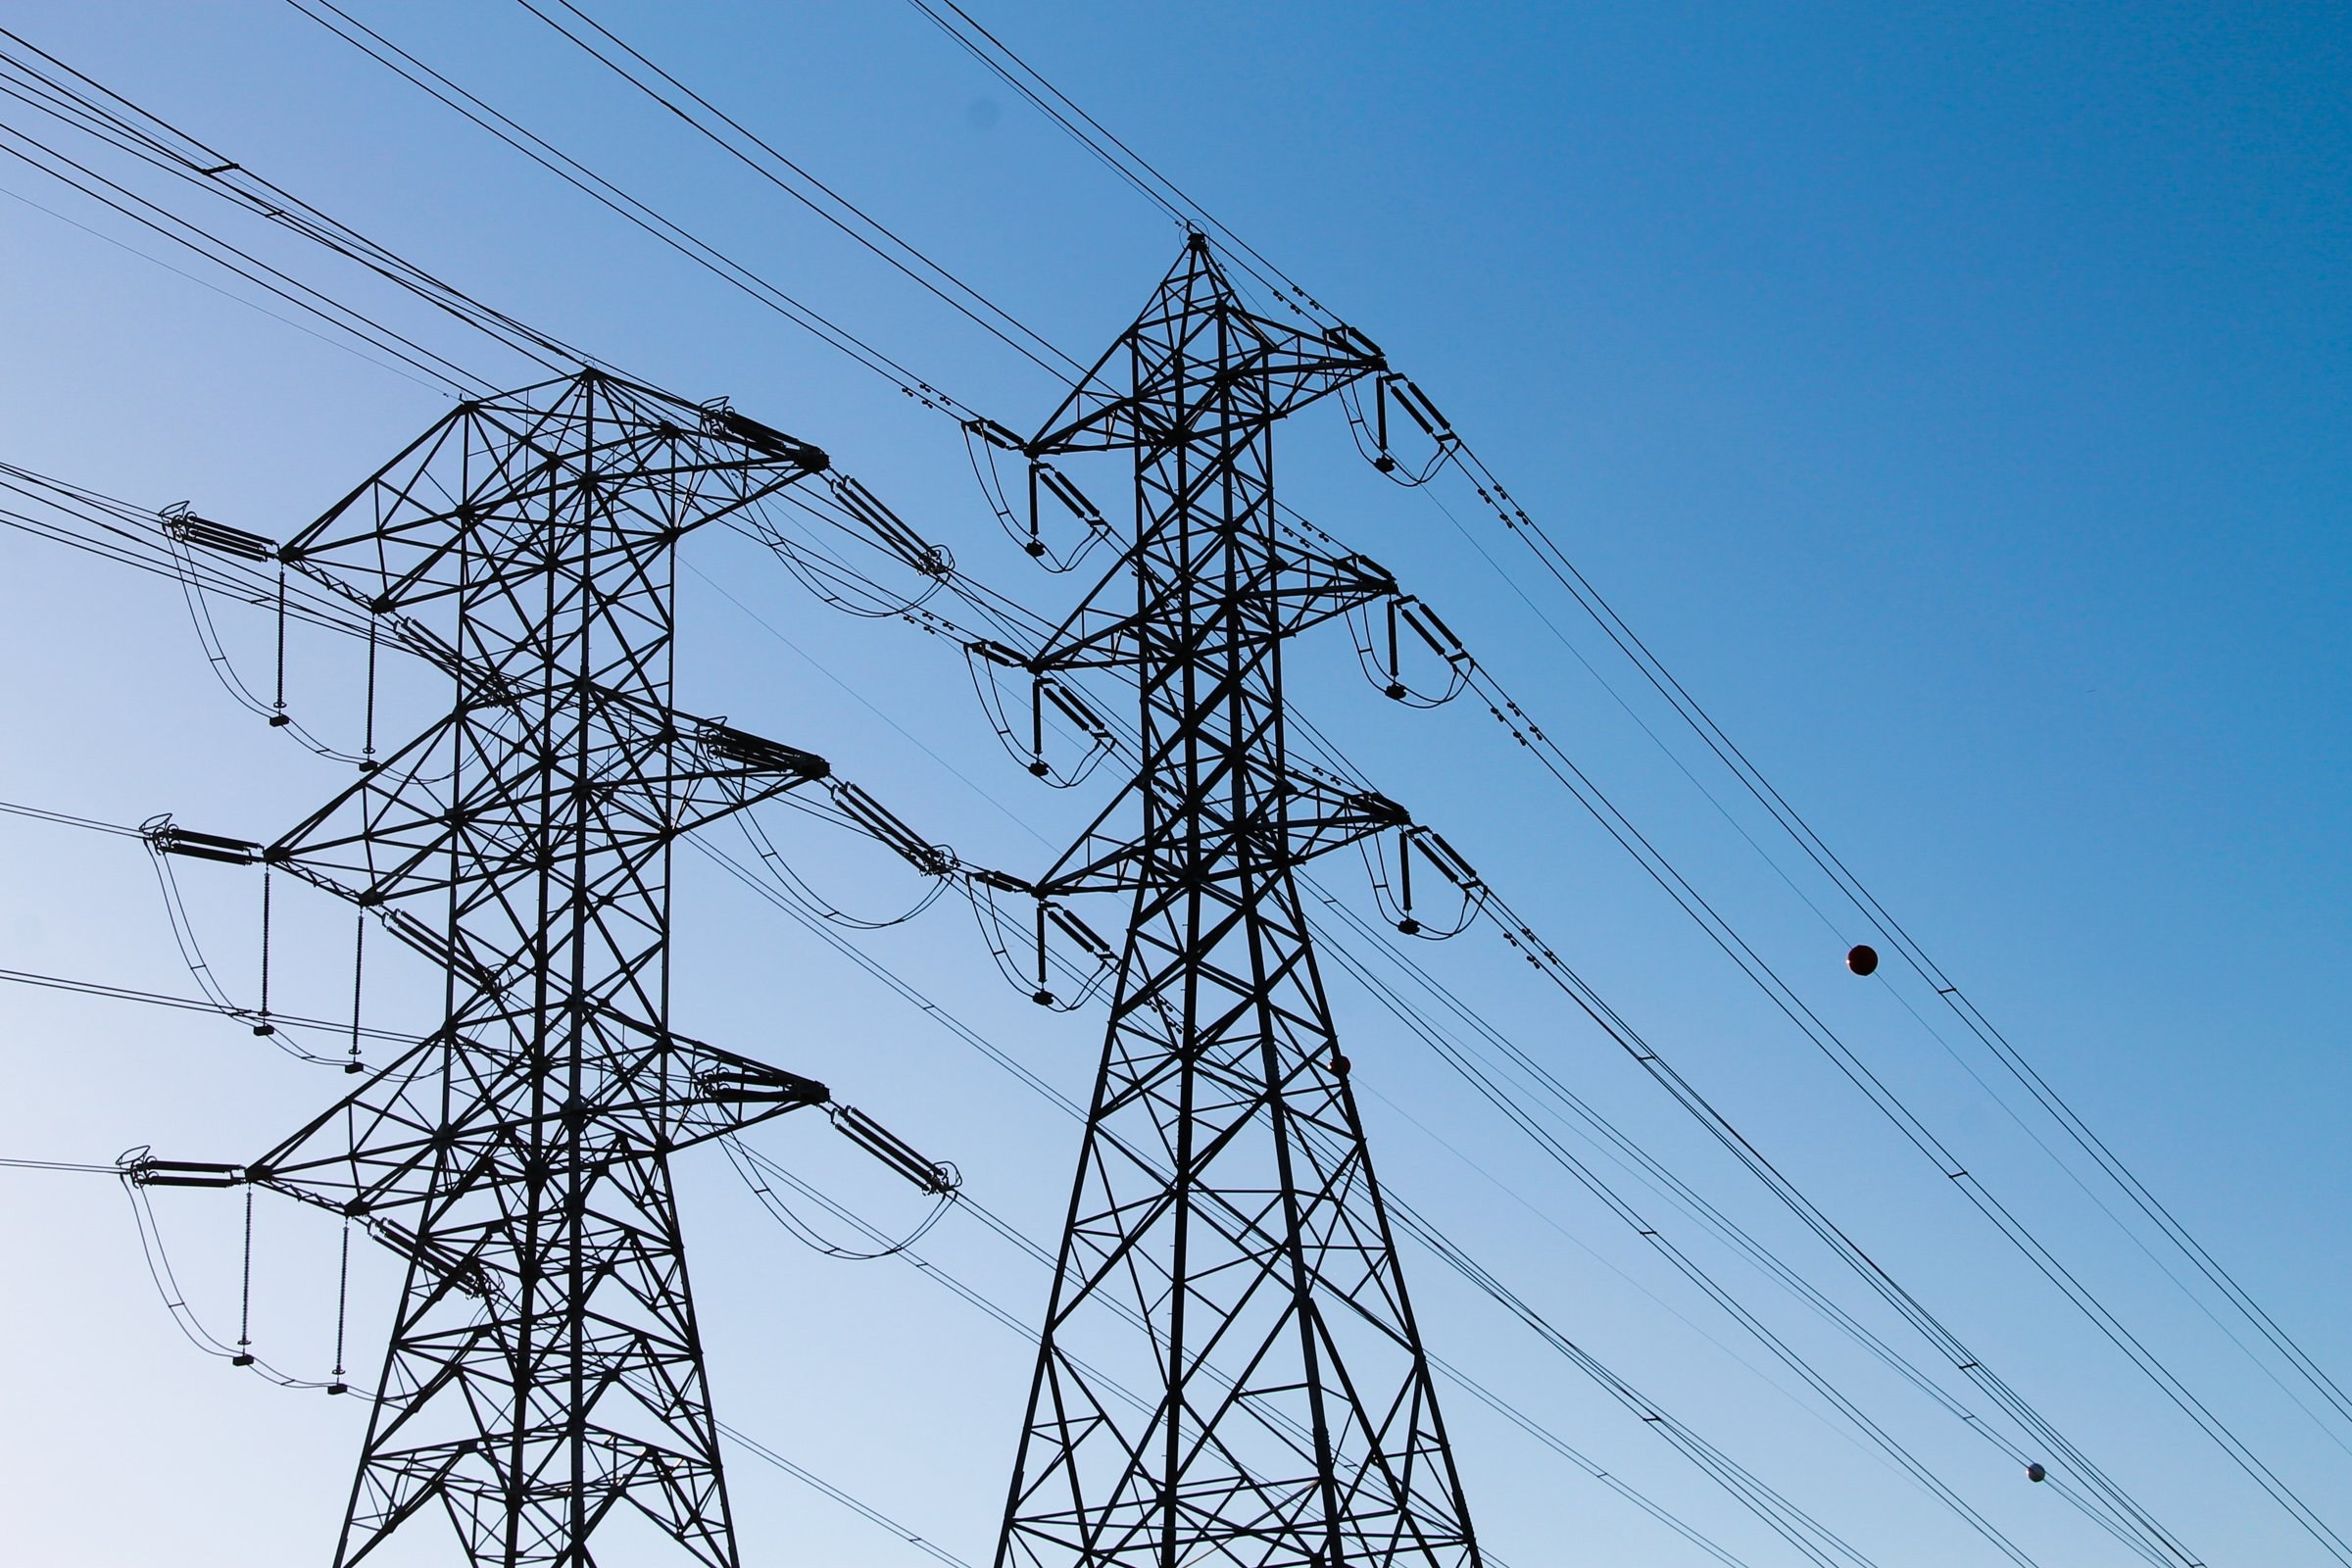 Electric Power Lines : Free stock photo of electric towers with power lines in